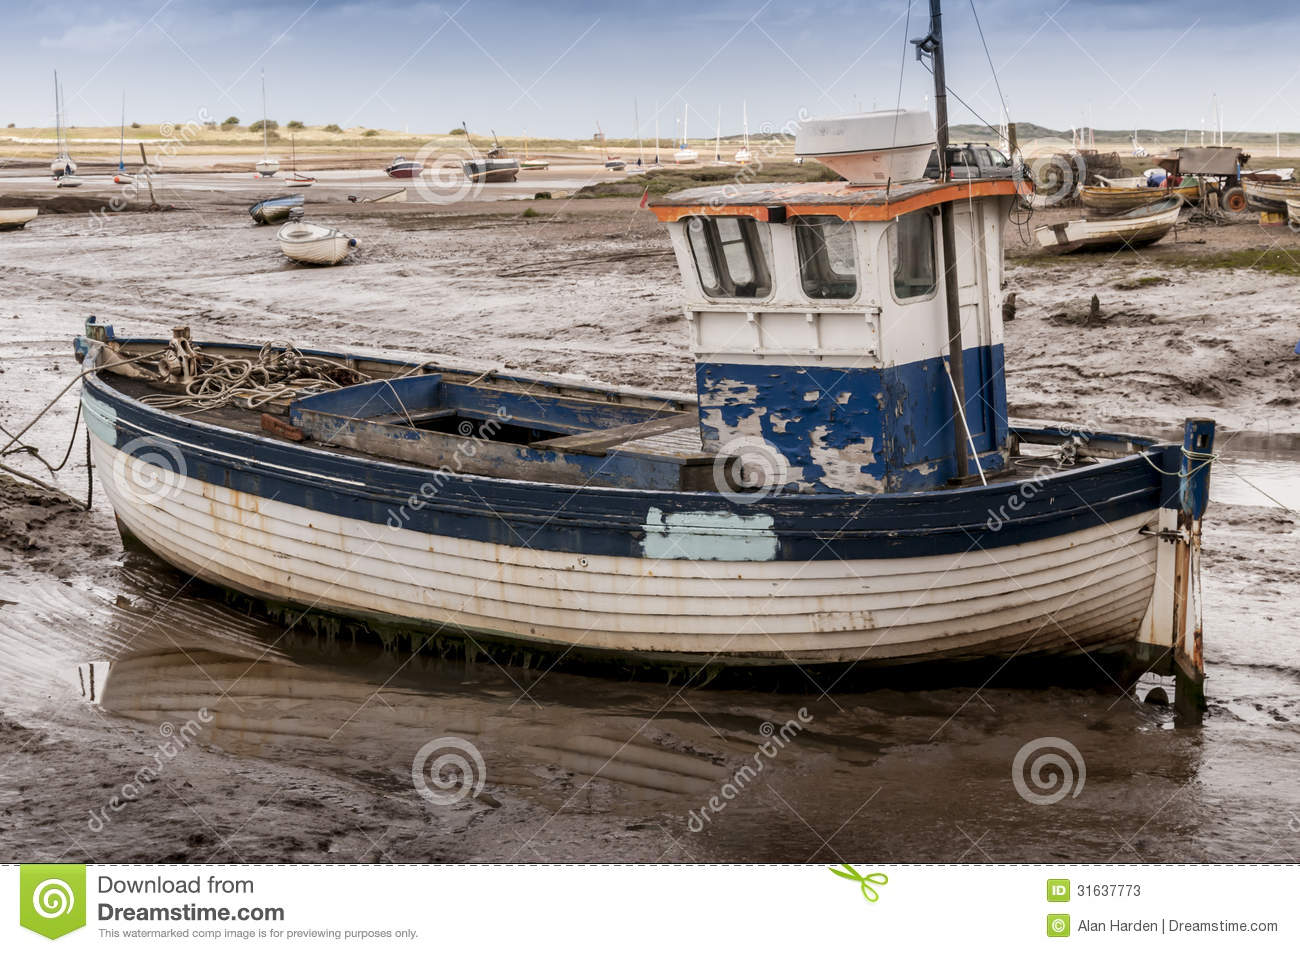 Old wooden fishing boat on mud flats at Brancaster Norfolk England.